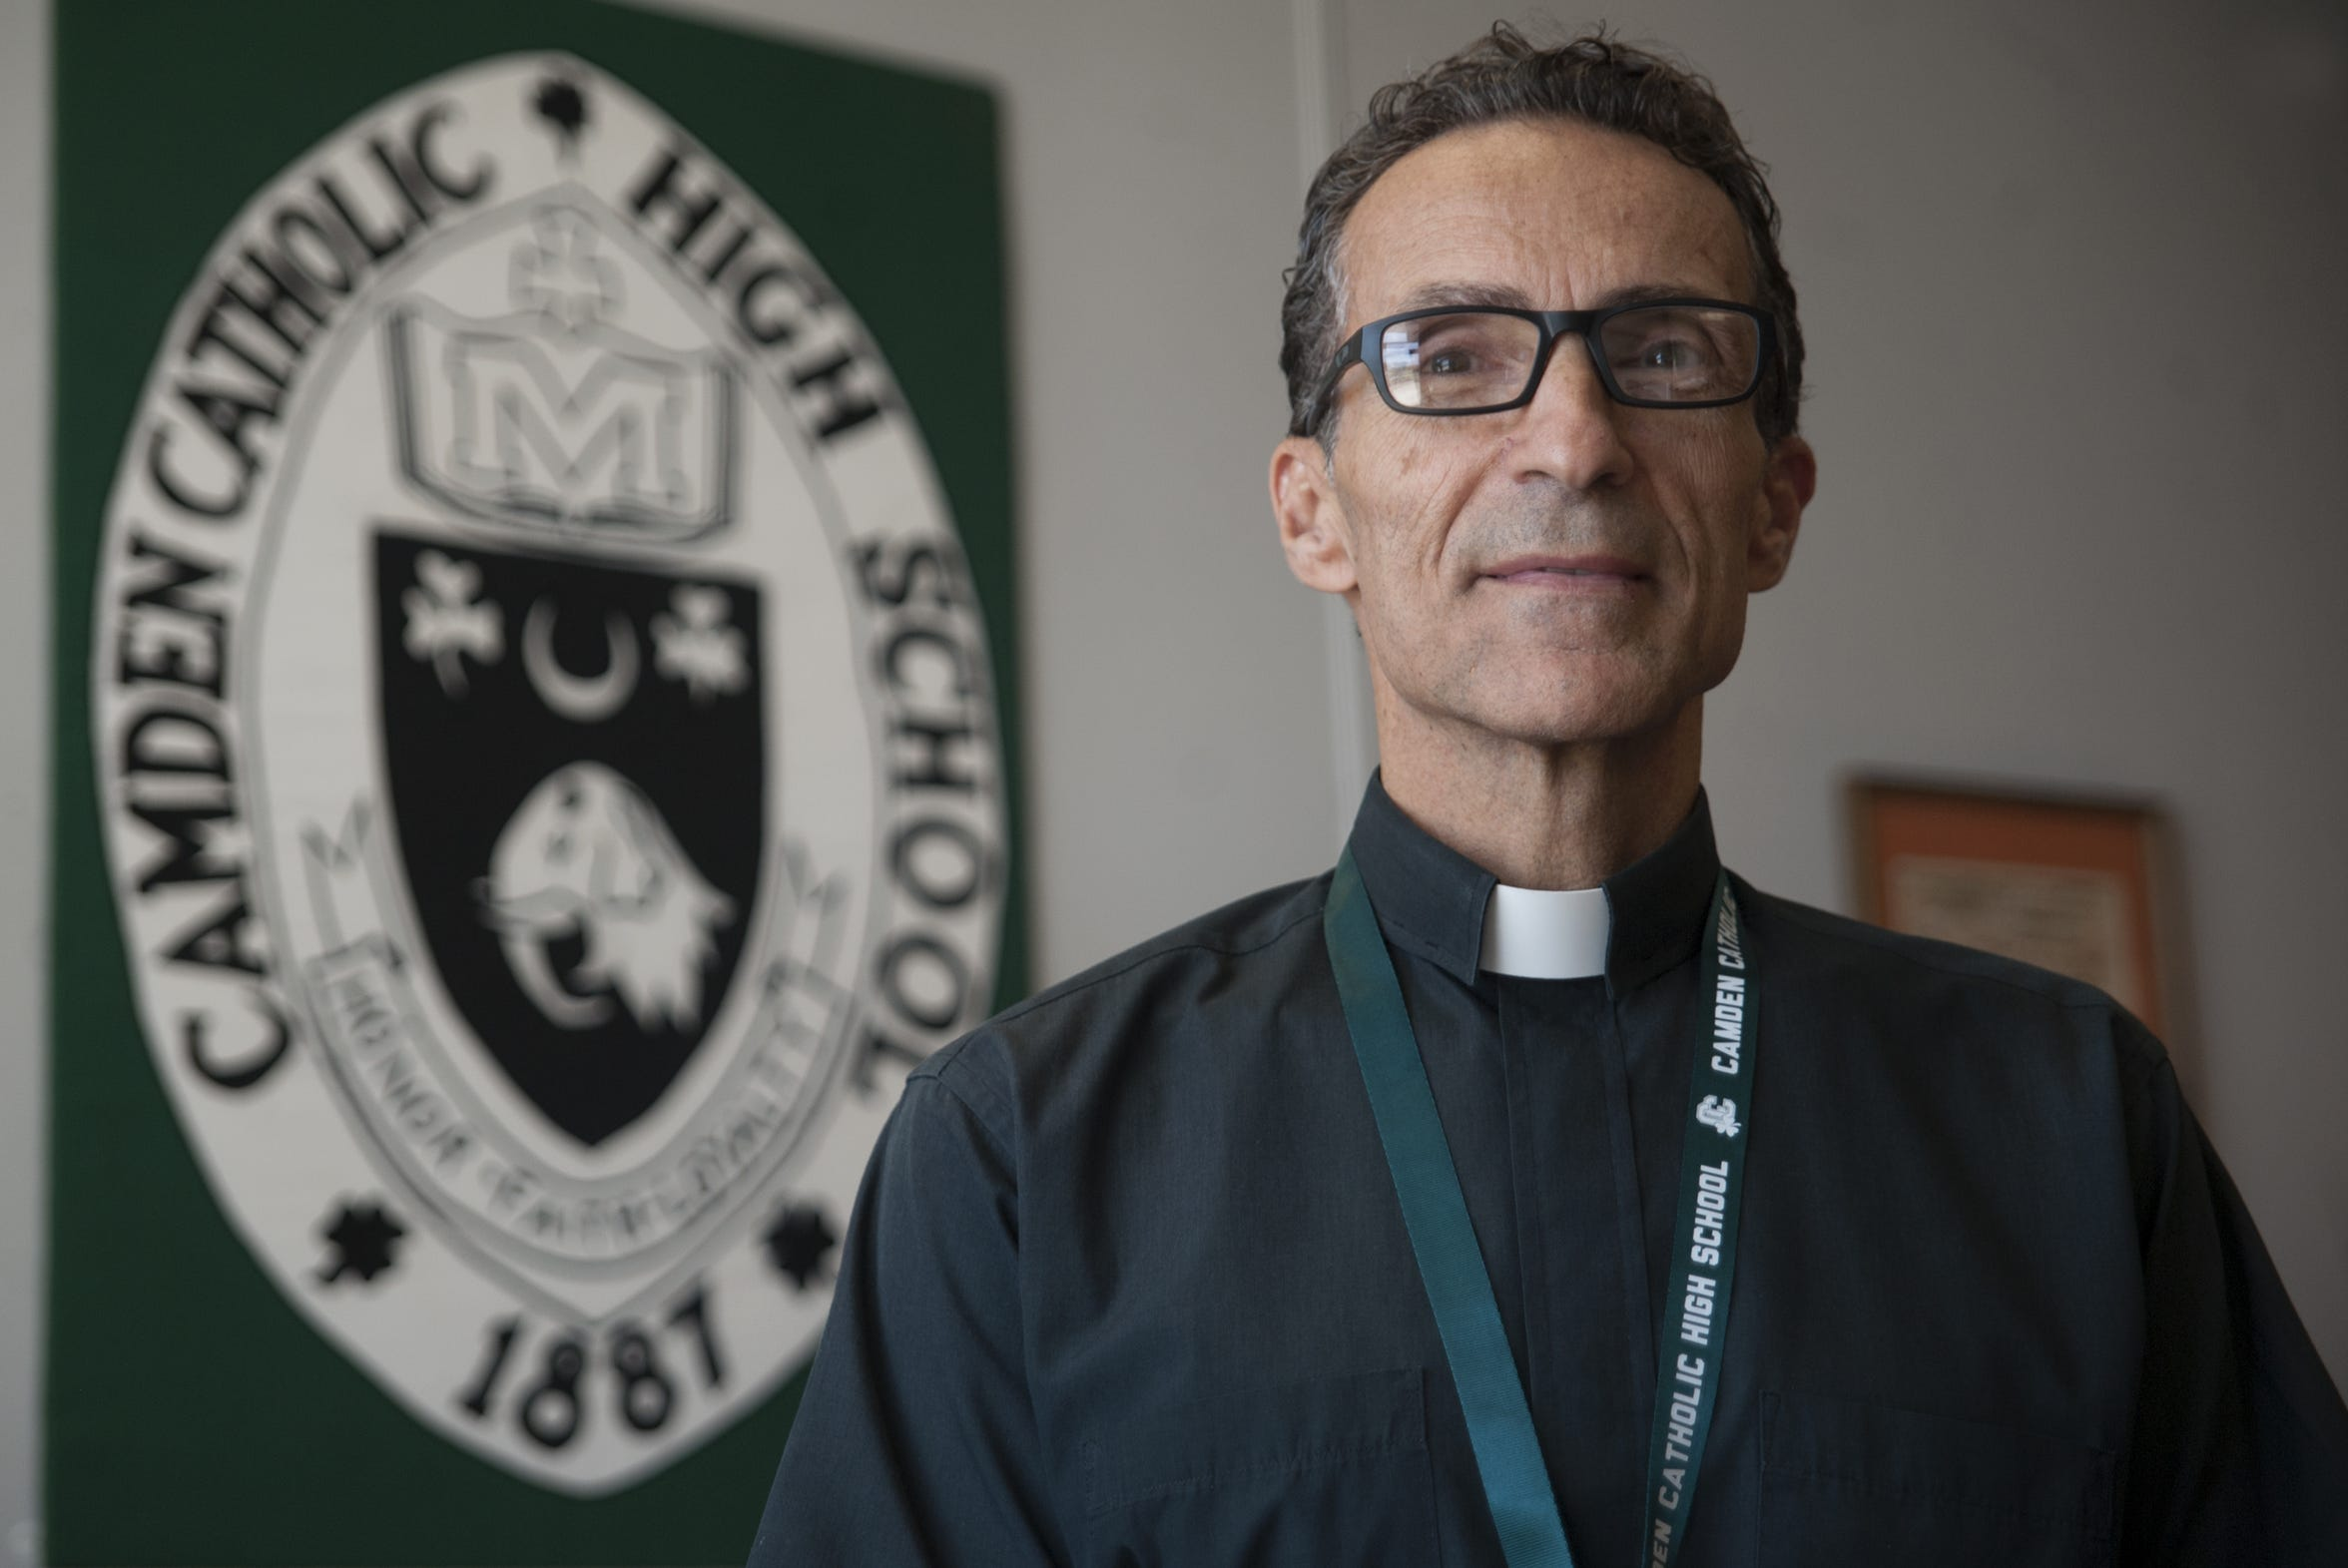 Father Joe Capella, rector at Camden Catholic High School in Cherry Hill.